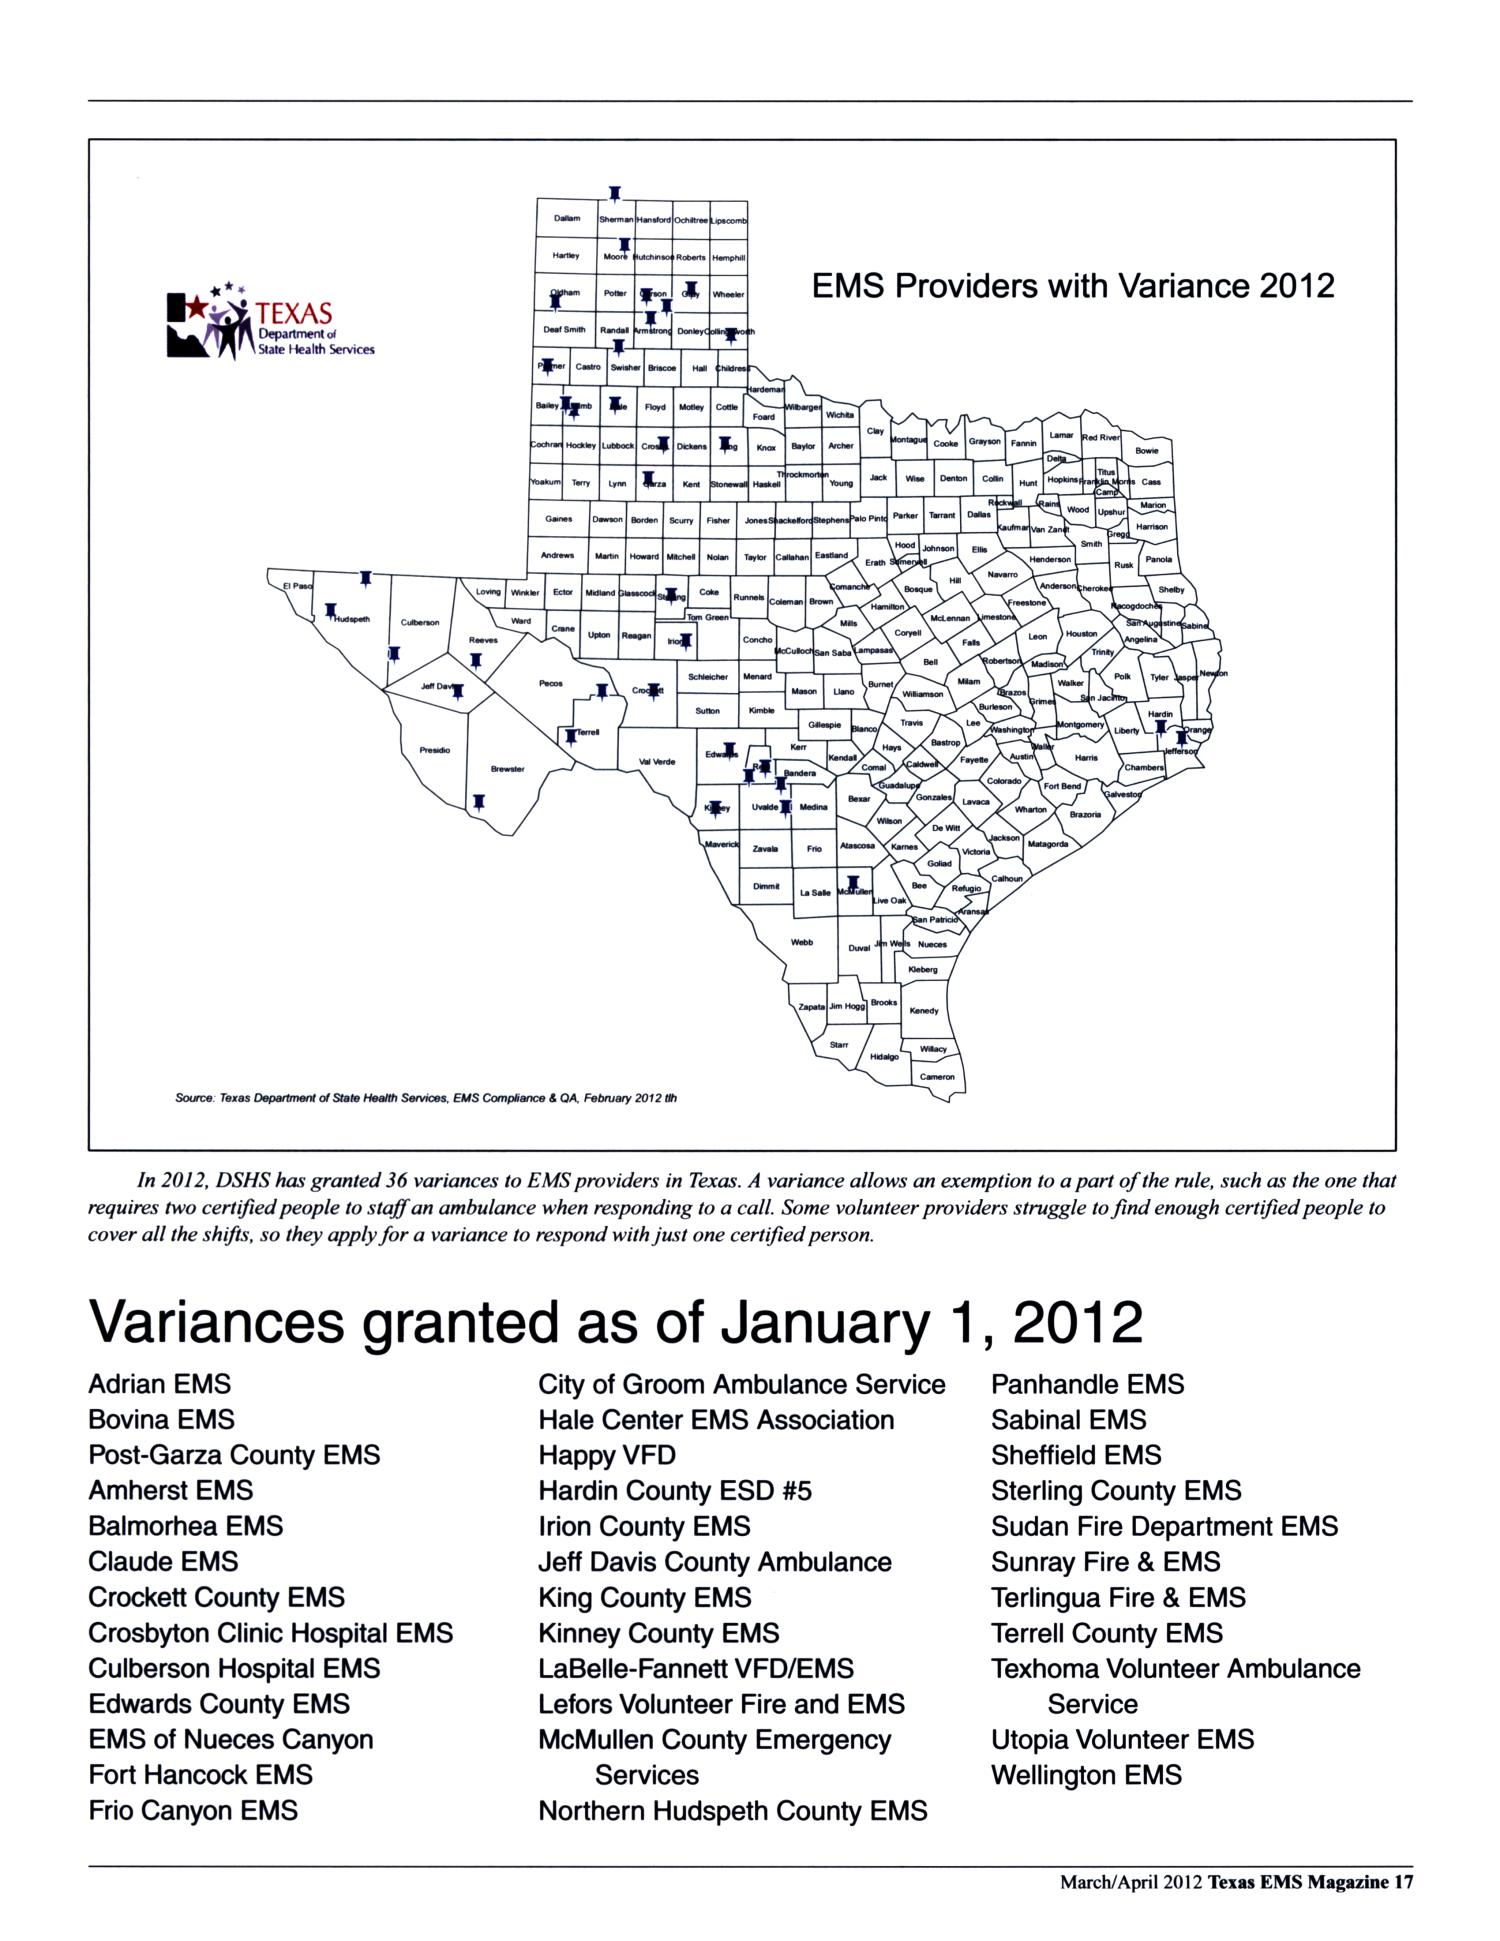 Texas Ems Magazine Volume 33 Number 2 Marchapril 2012 Page 17